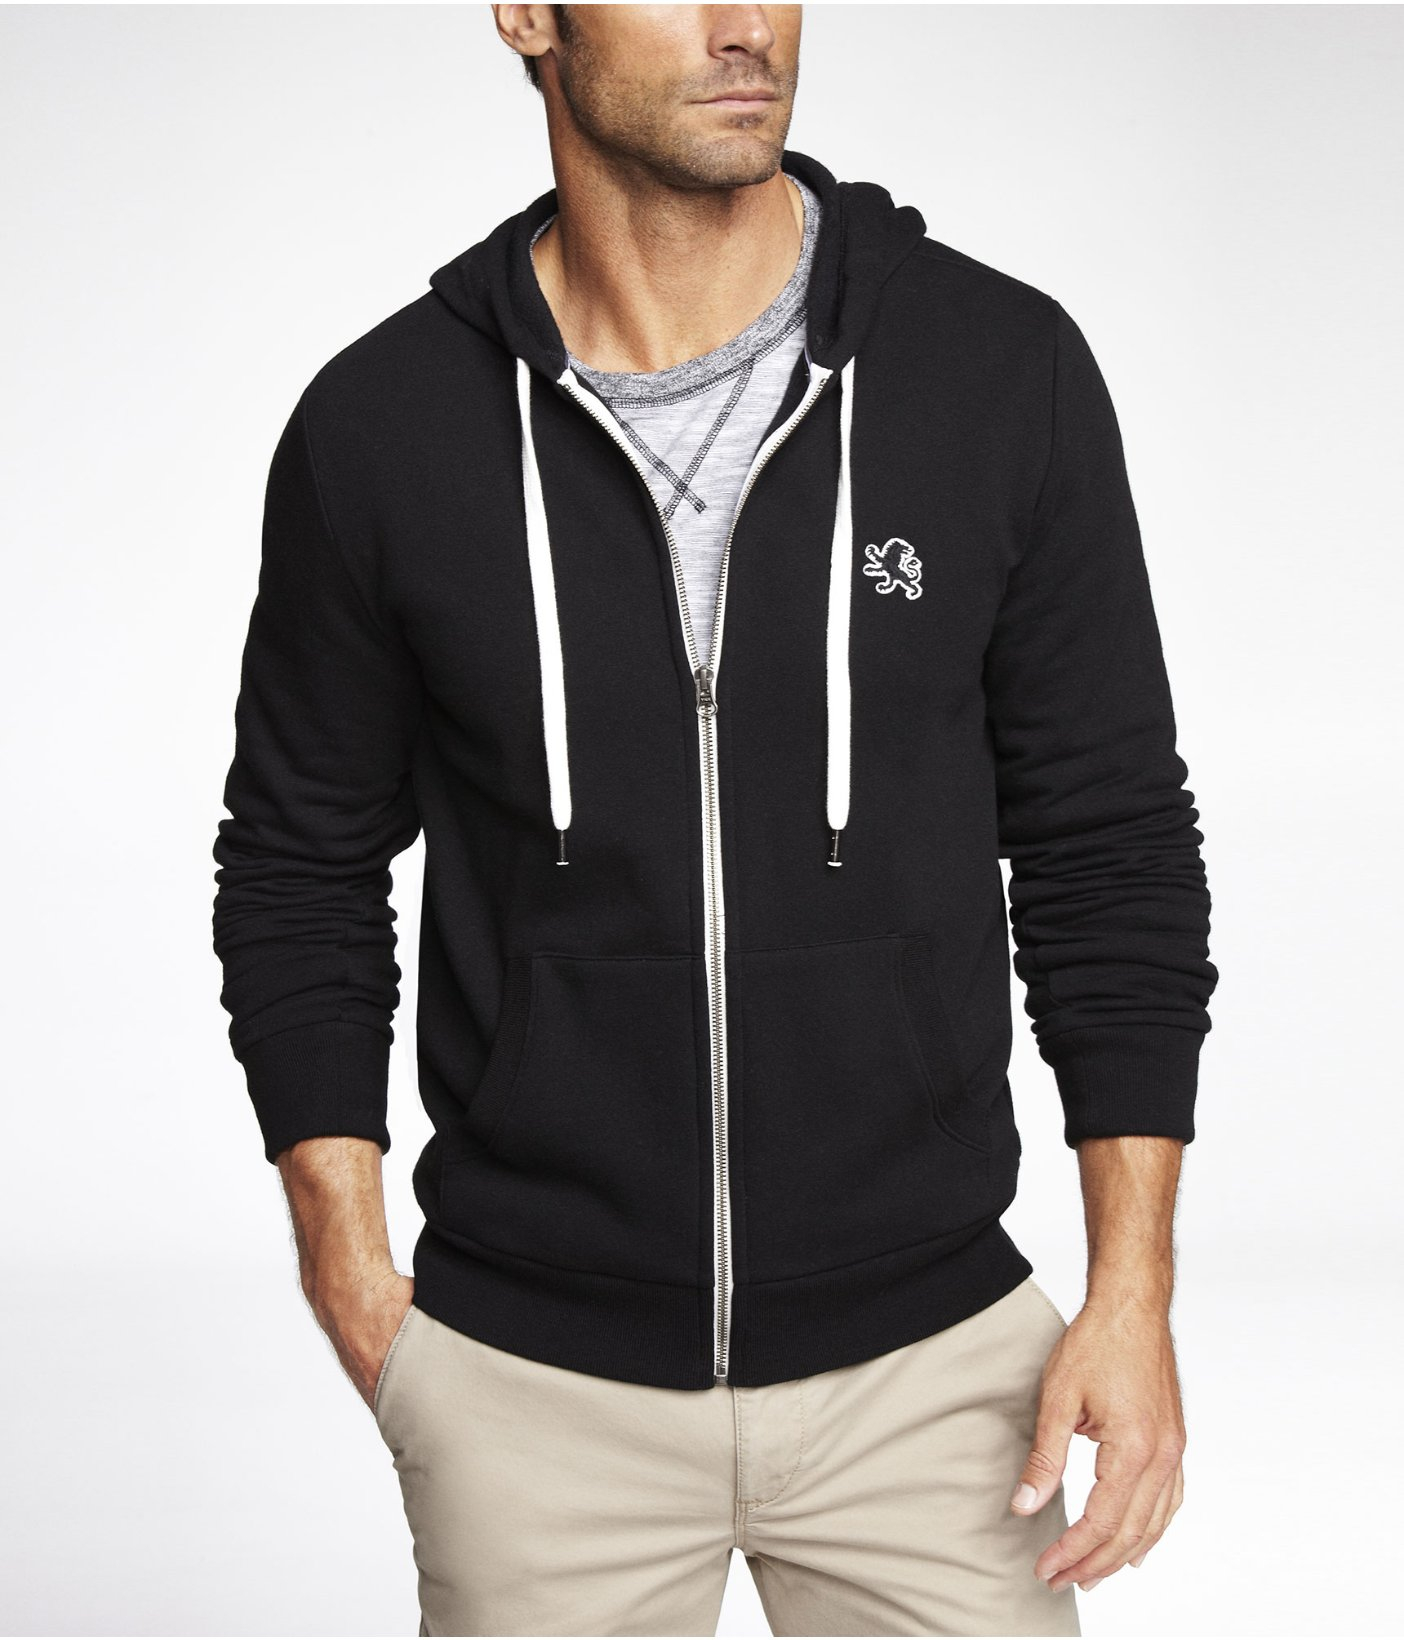 Express Hoodies Apparel Images - Reverse Search